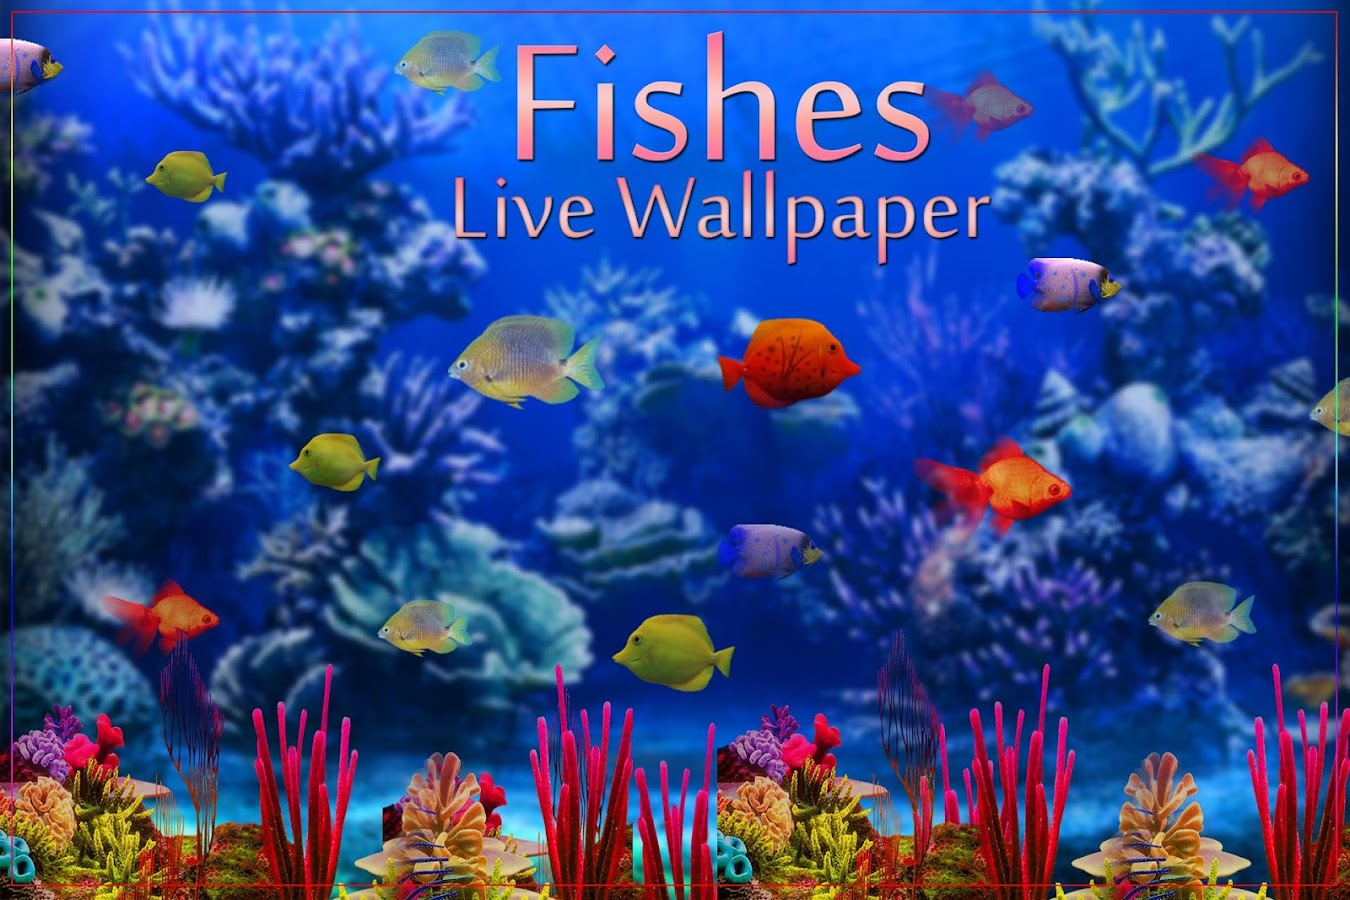 Moving Fish Wallpapers Fishes Live Wal...